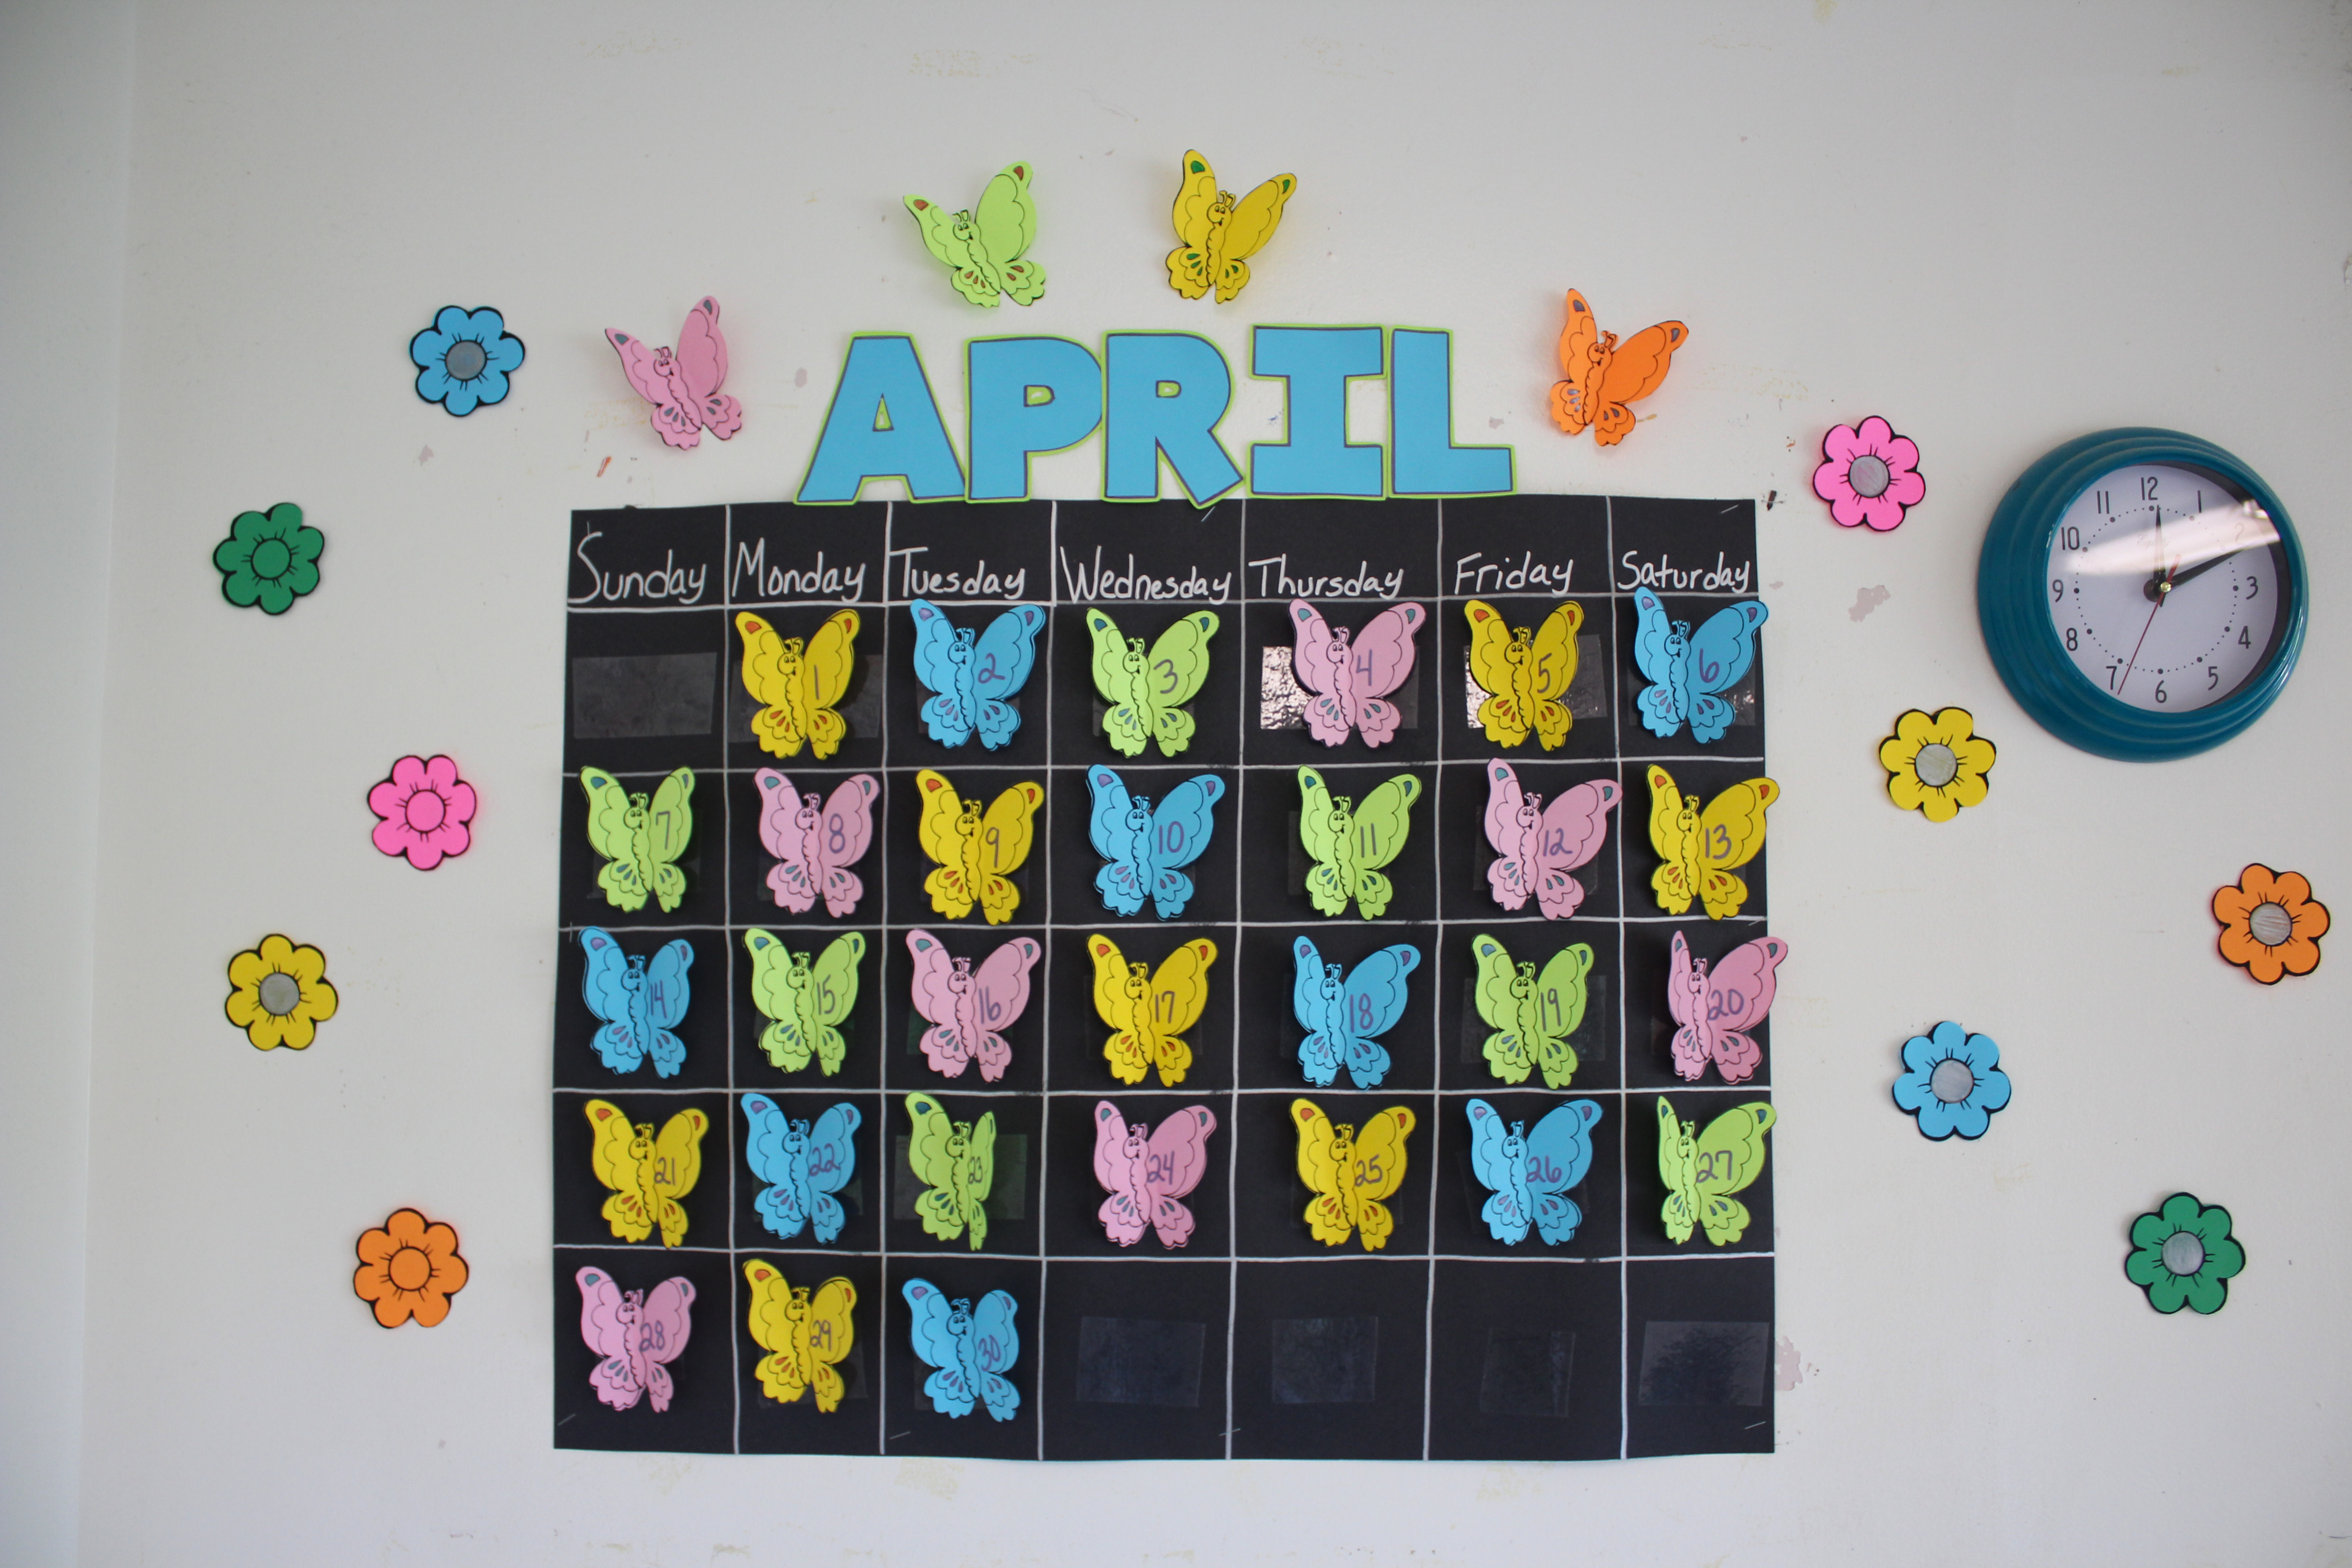 a calendar with butterflies showing every day in the month of April